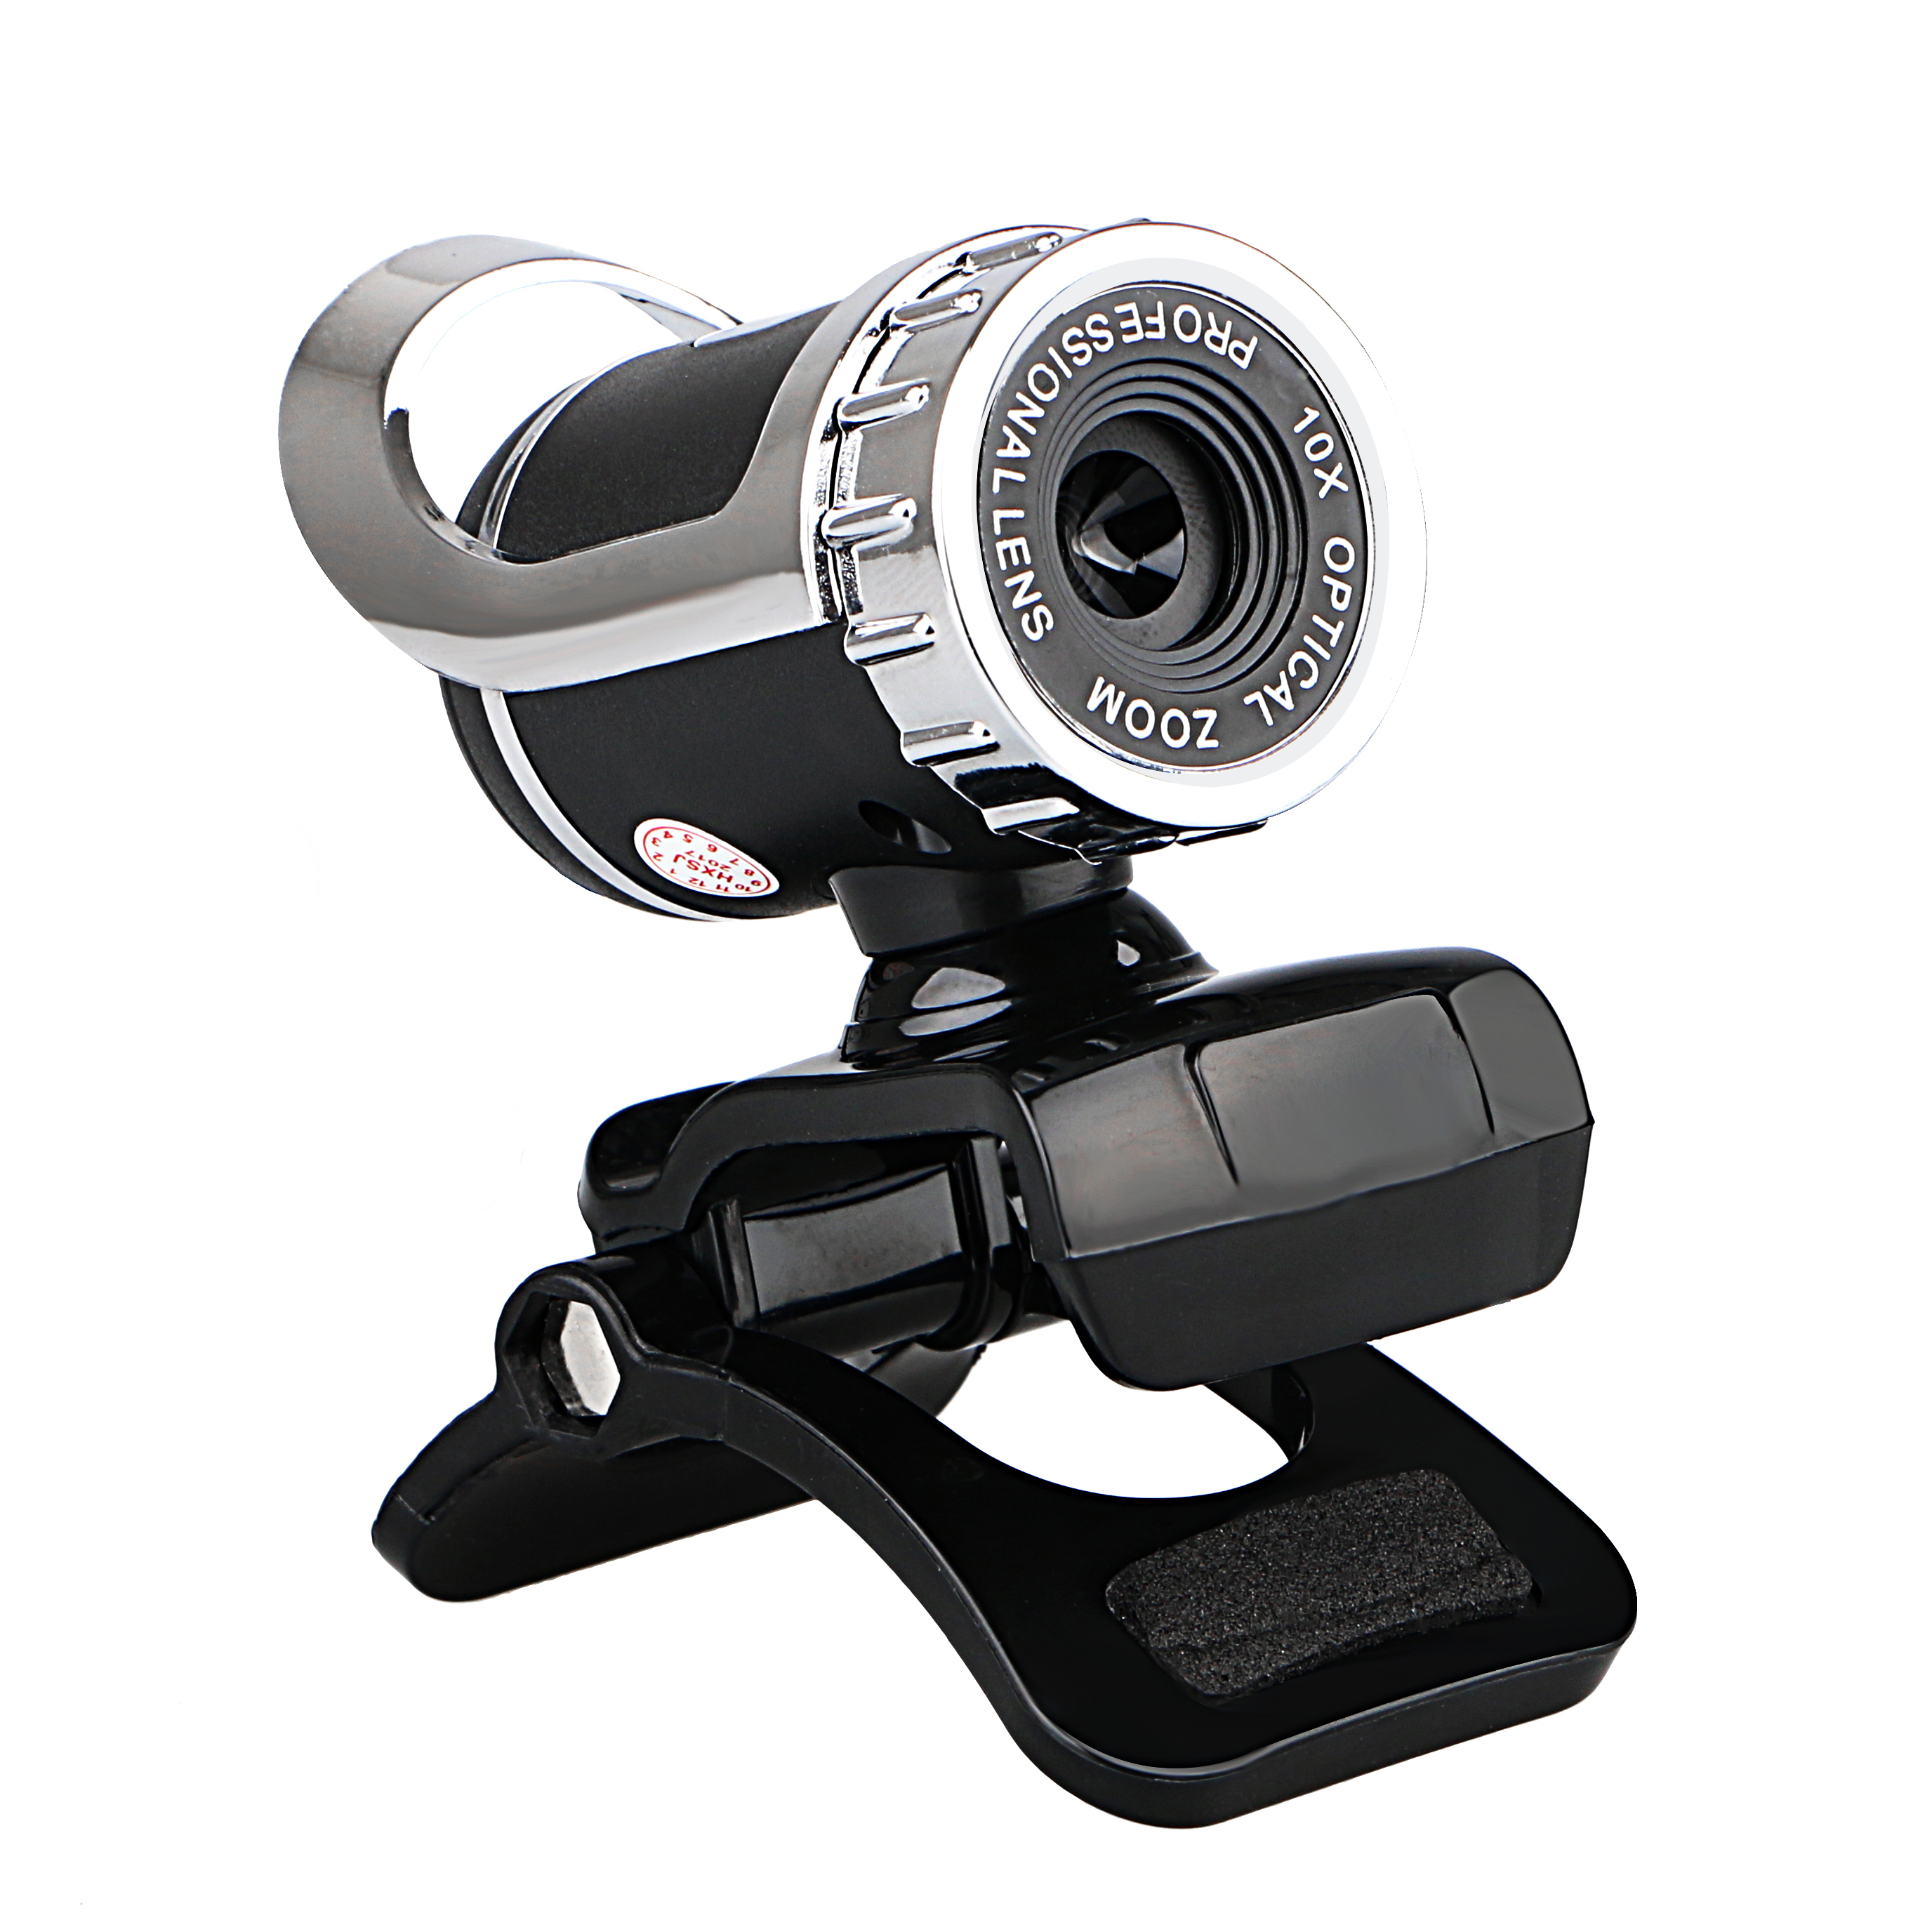 TSV USB High Resolution 1200 Megapixel HD Webcam Camera with Microphone 360 Degree For PC Laptop Desktop